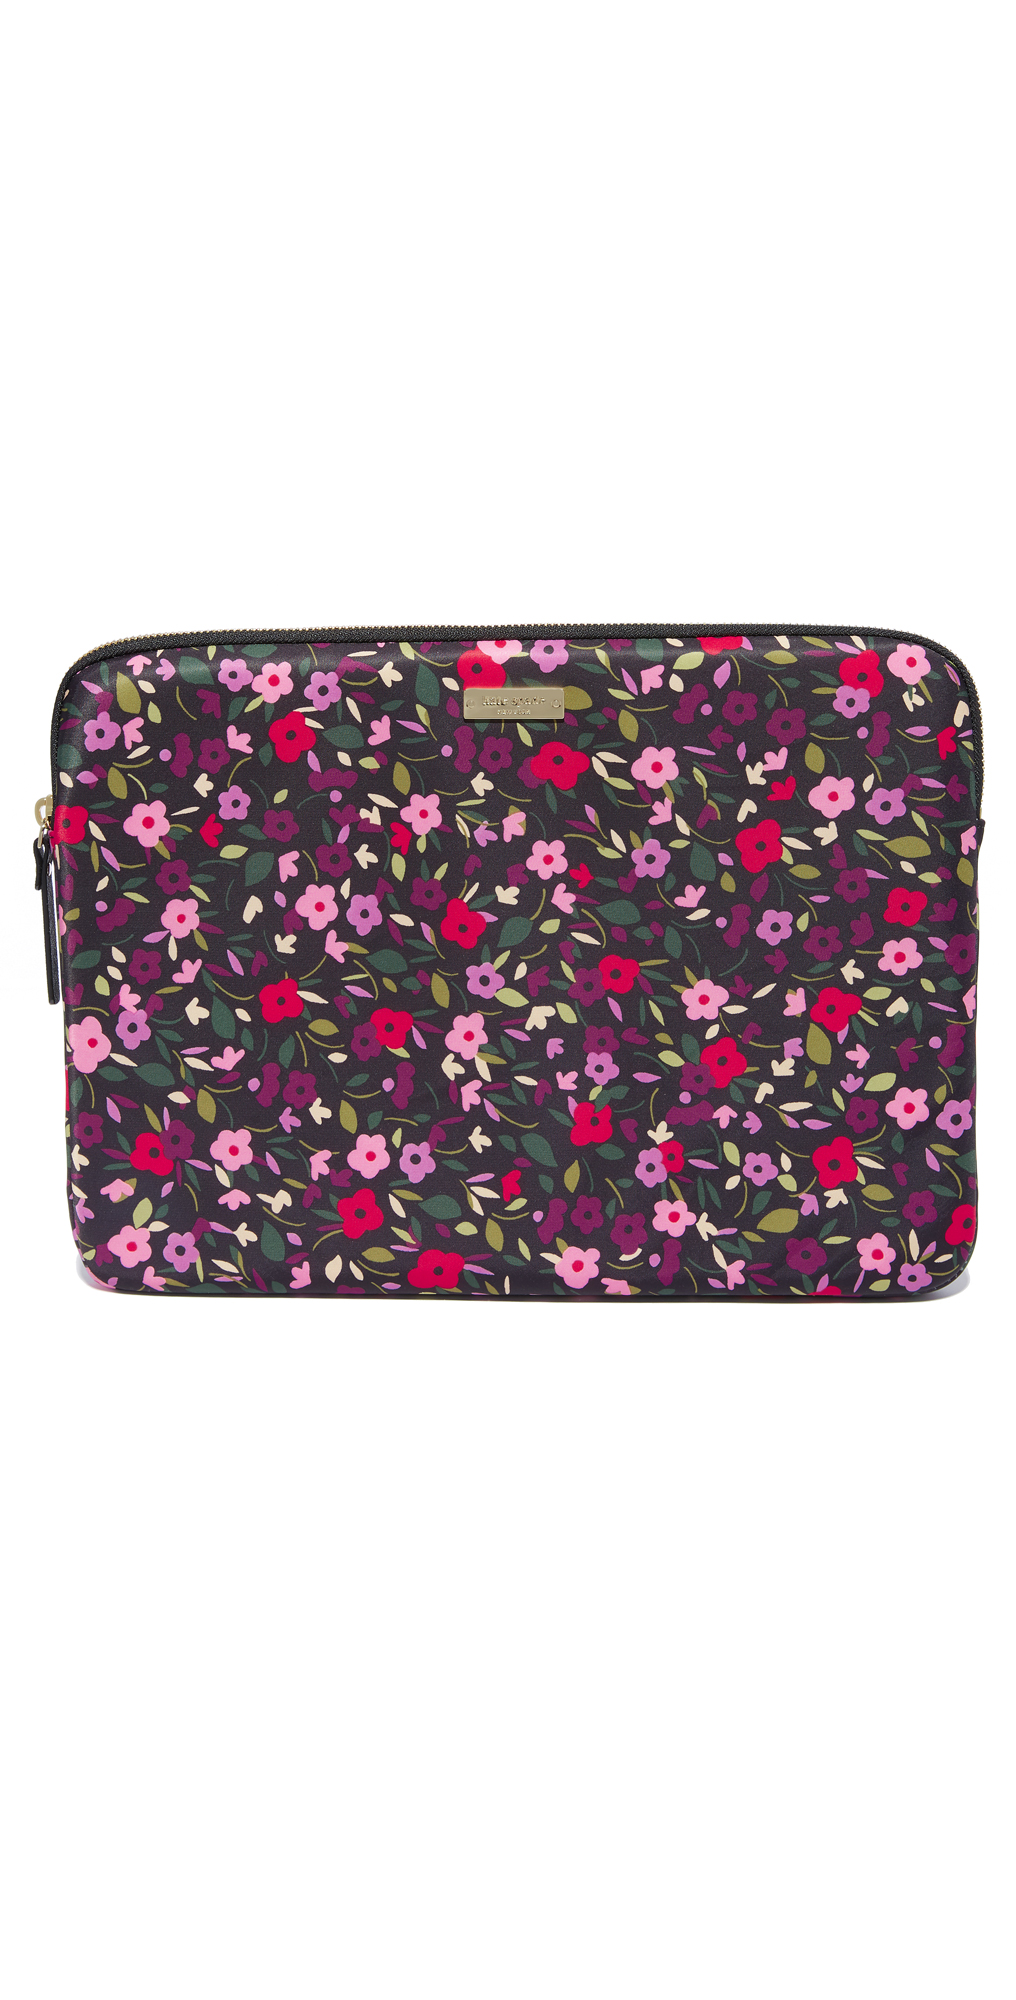 13 inch Boho Floral Laptop Sleeve Kate Spade New York